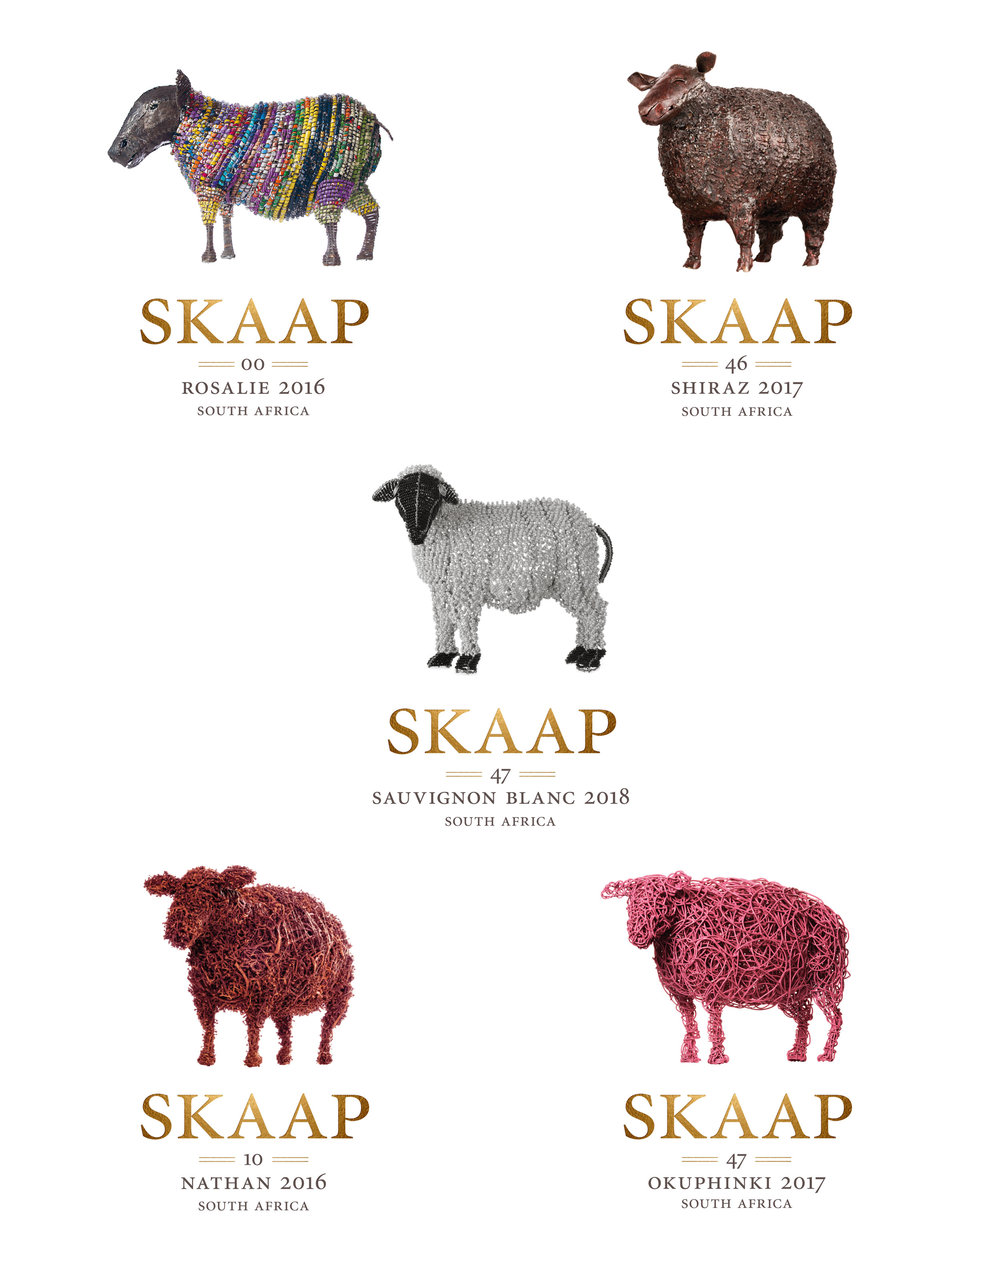 Skaap Wines label artwork – Designed by Ian Whalley